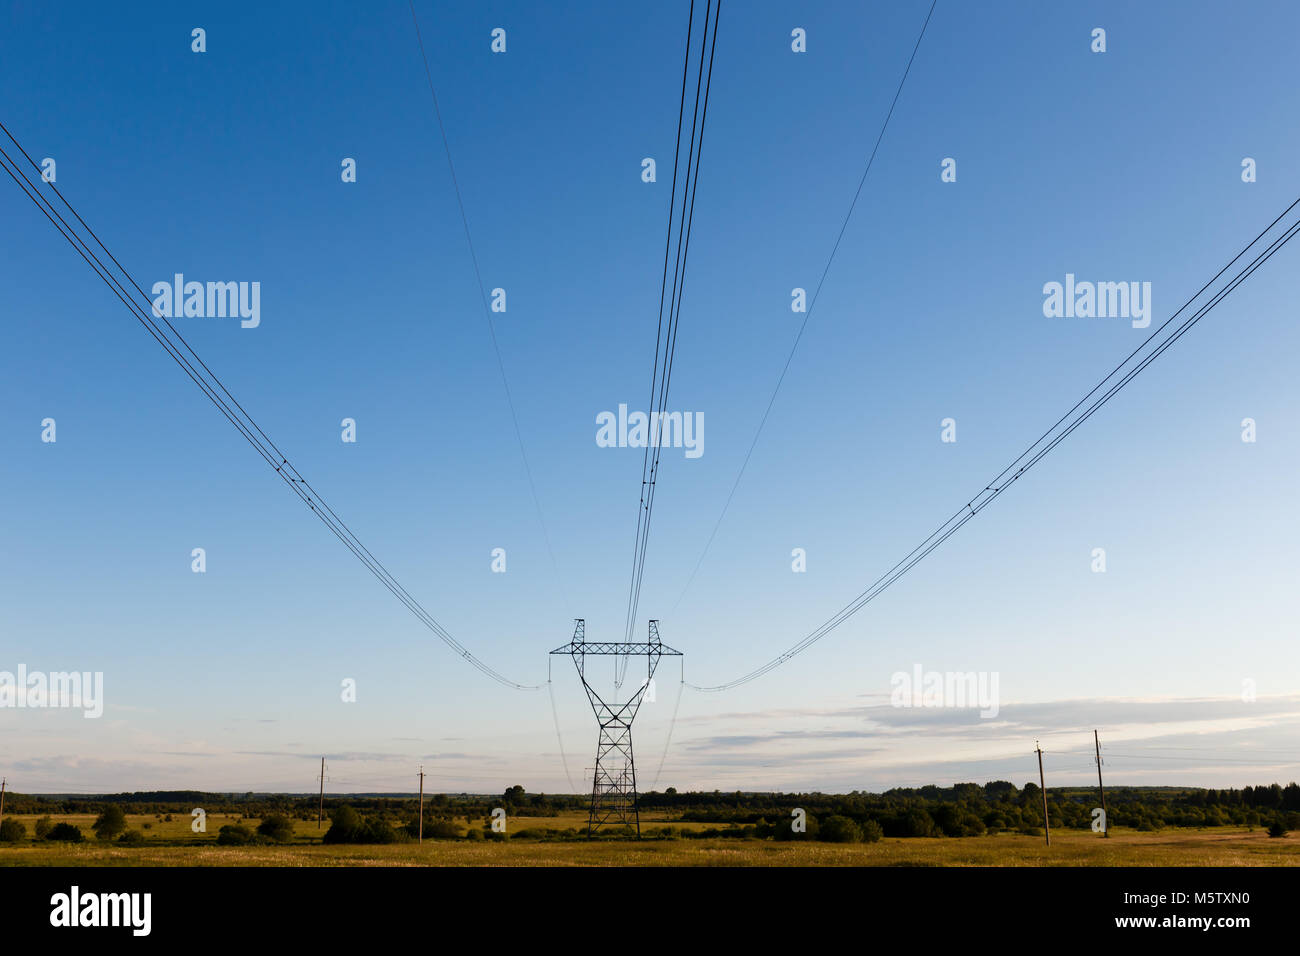 support of high-voltage power line - Stock Image